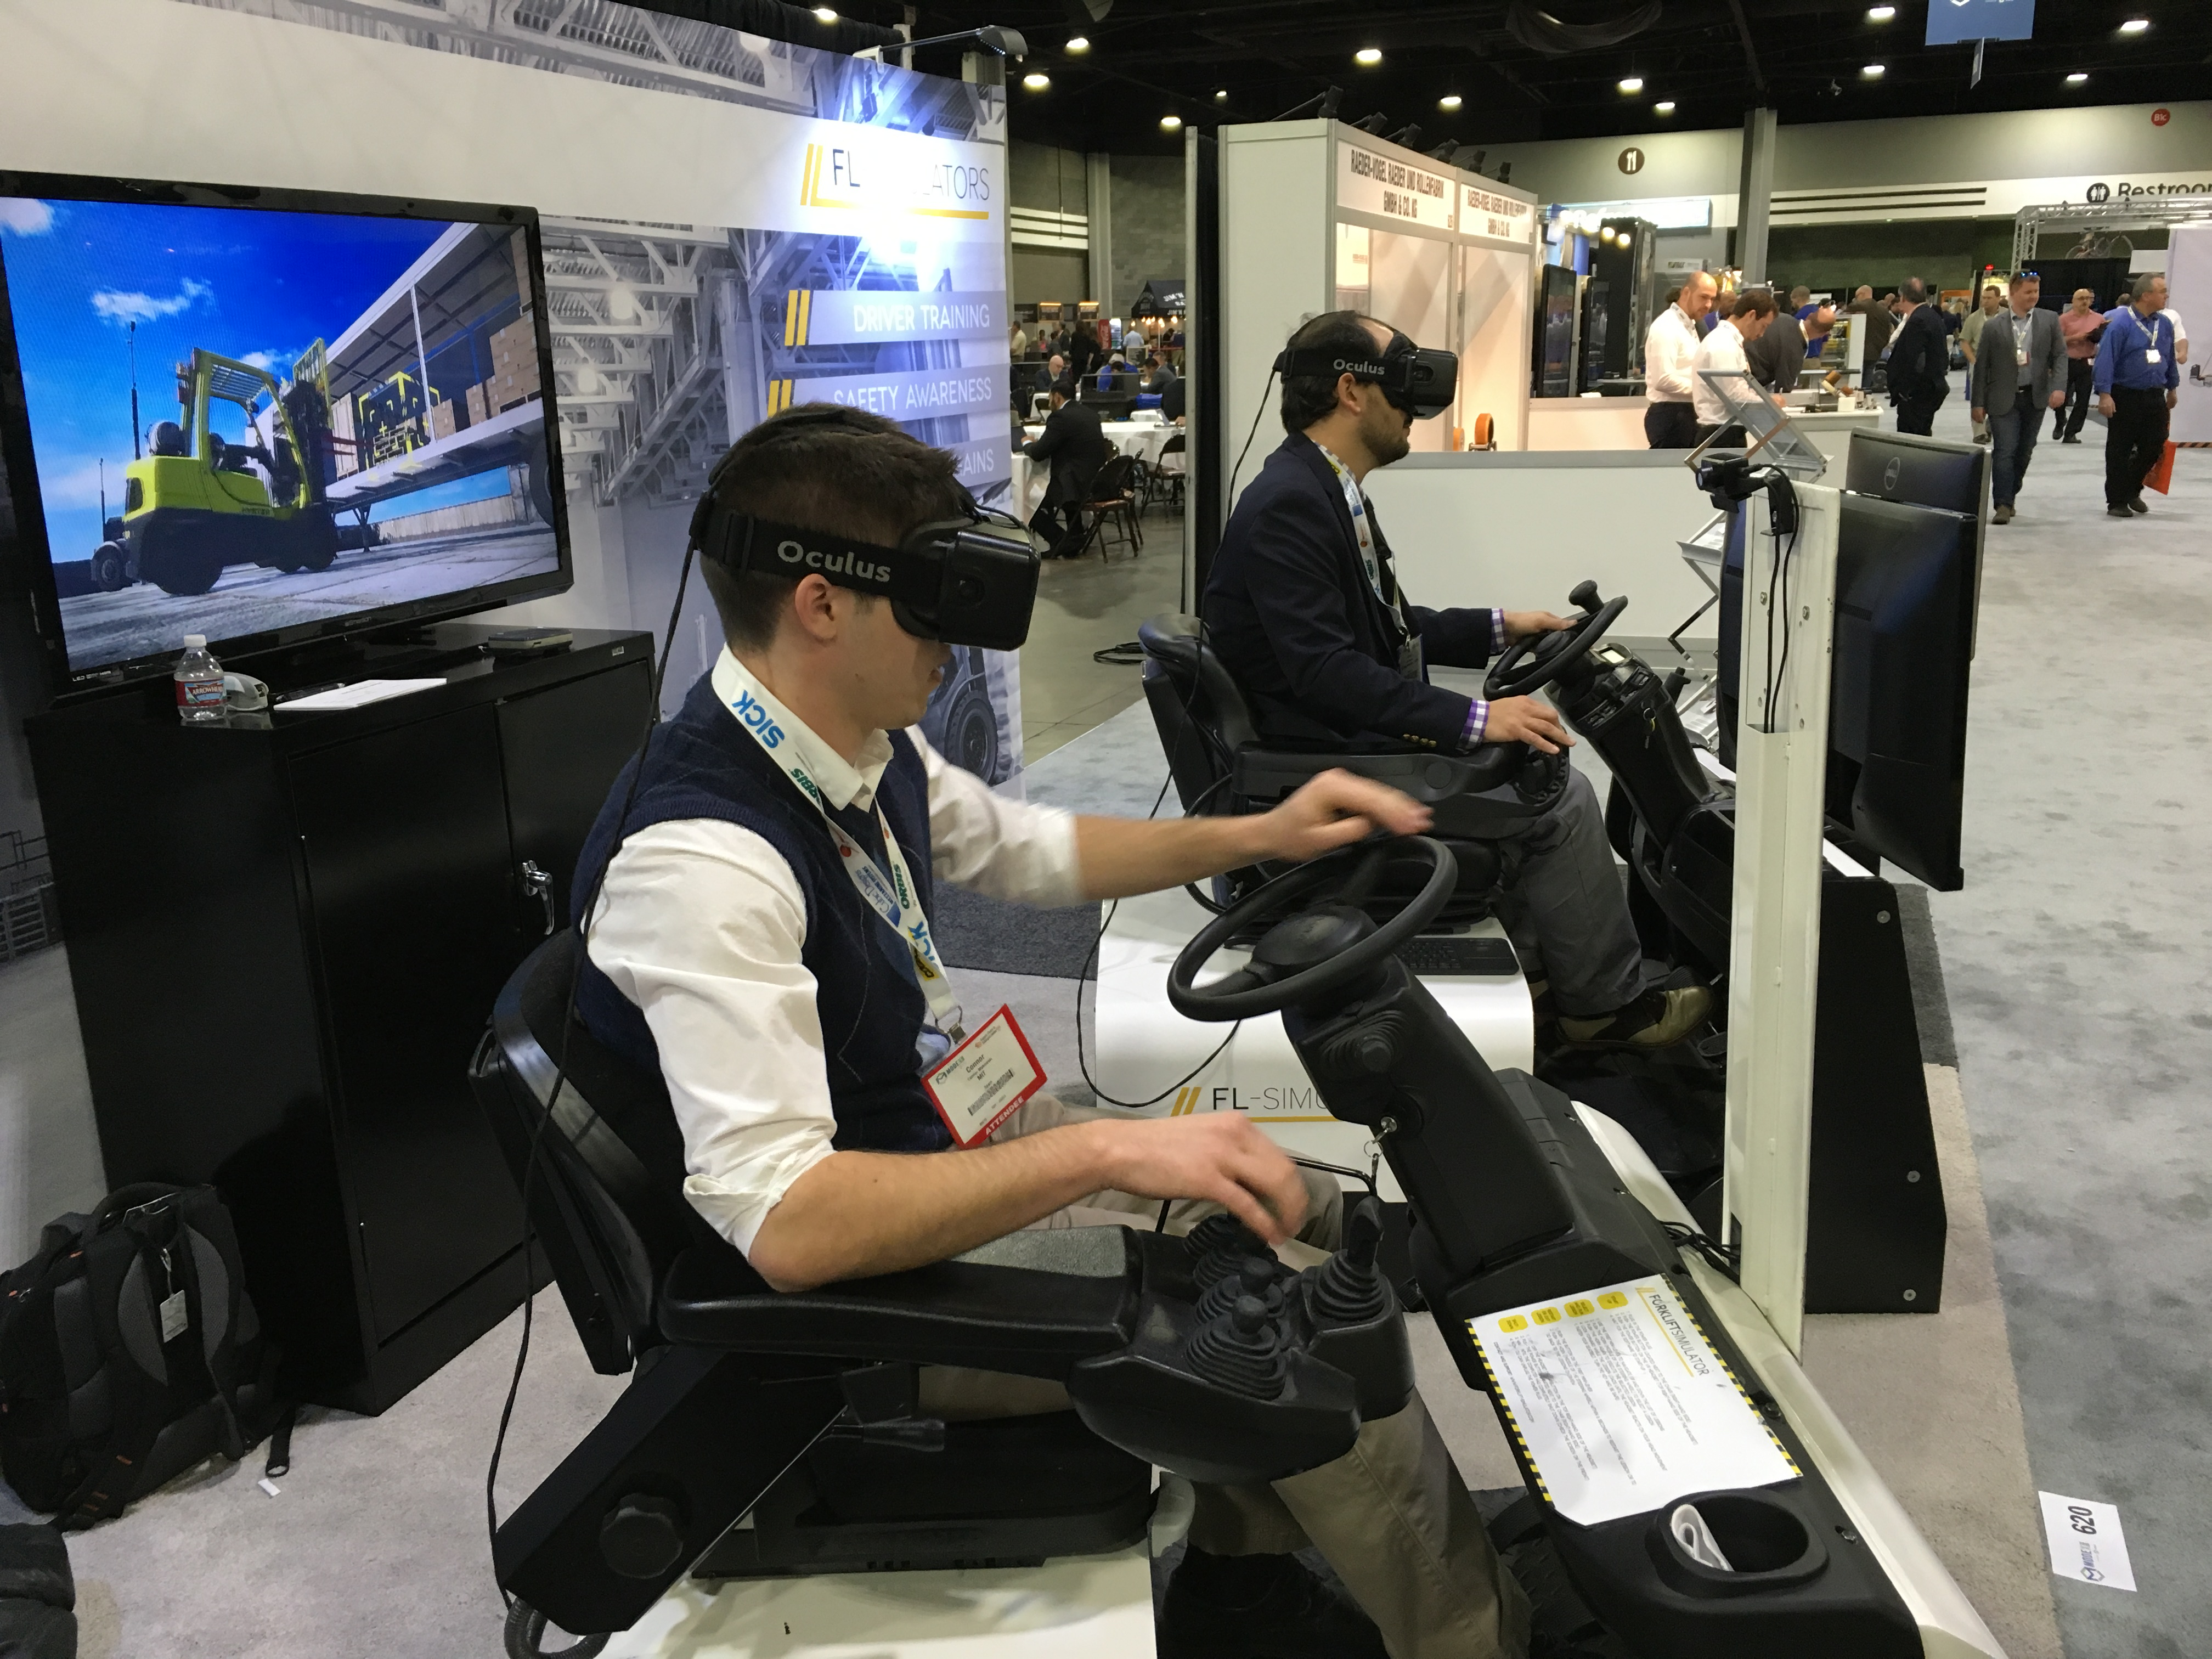 Simulator designed to train new employees on how to operate a forklift in VR.